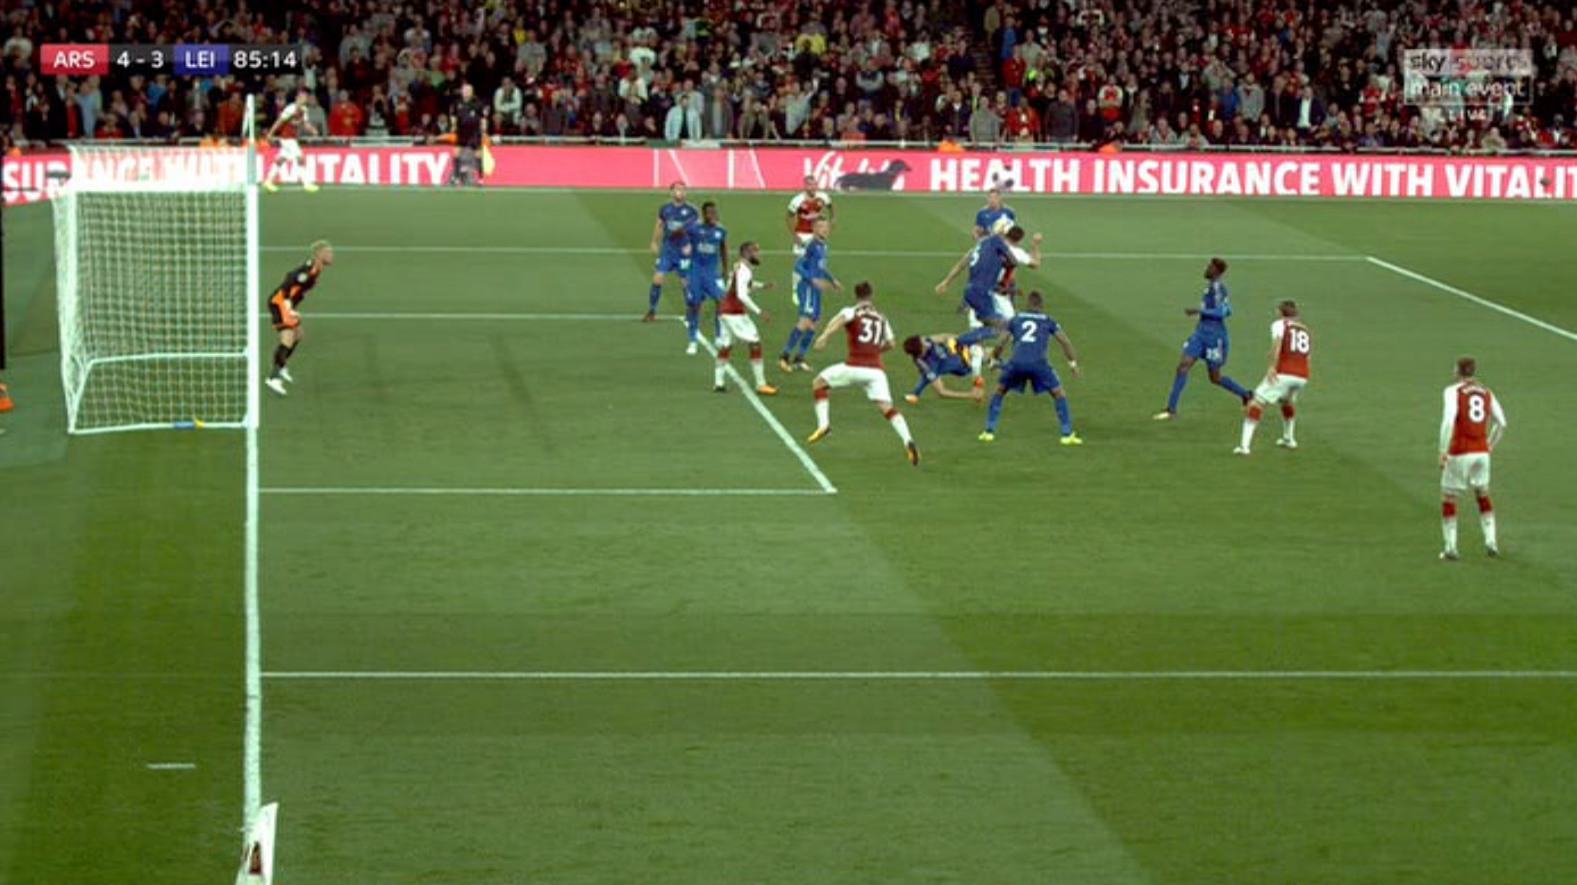 Giroud rose above his marker at the corner